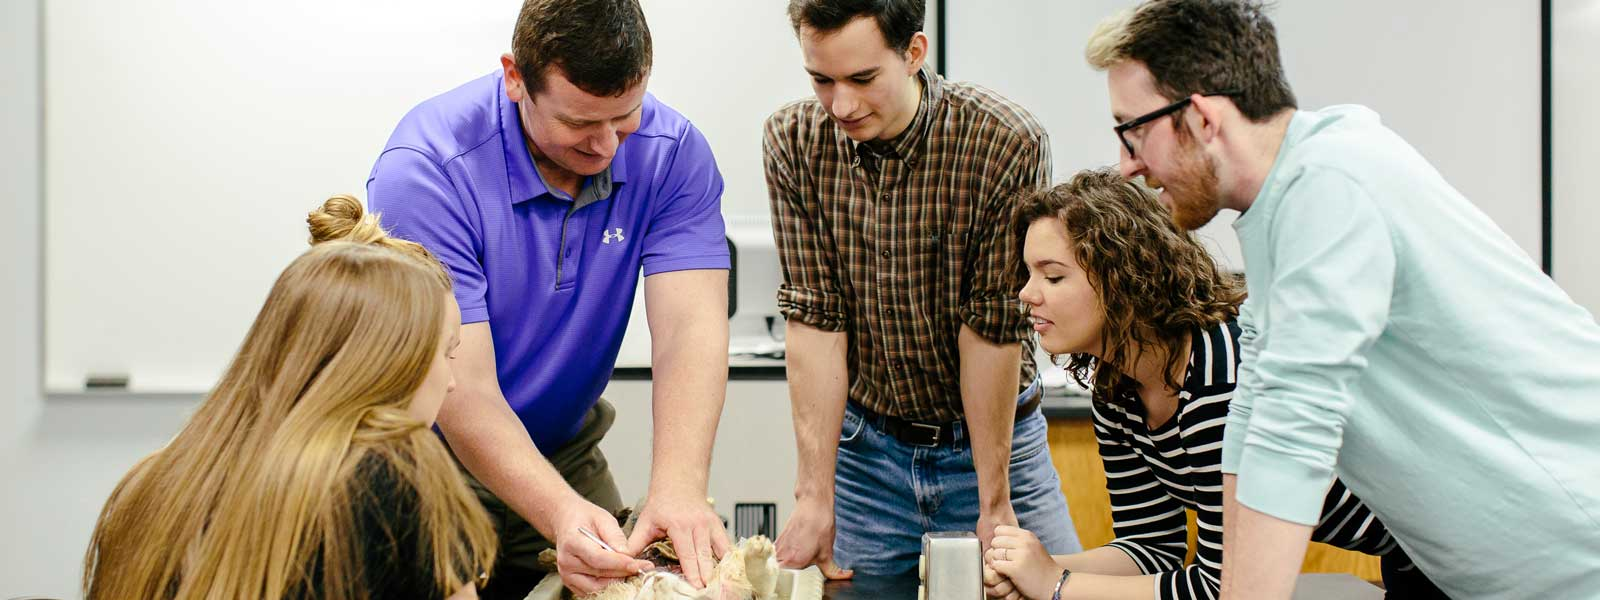 professor works on biology dissection with four students observing